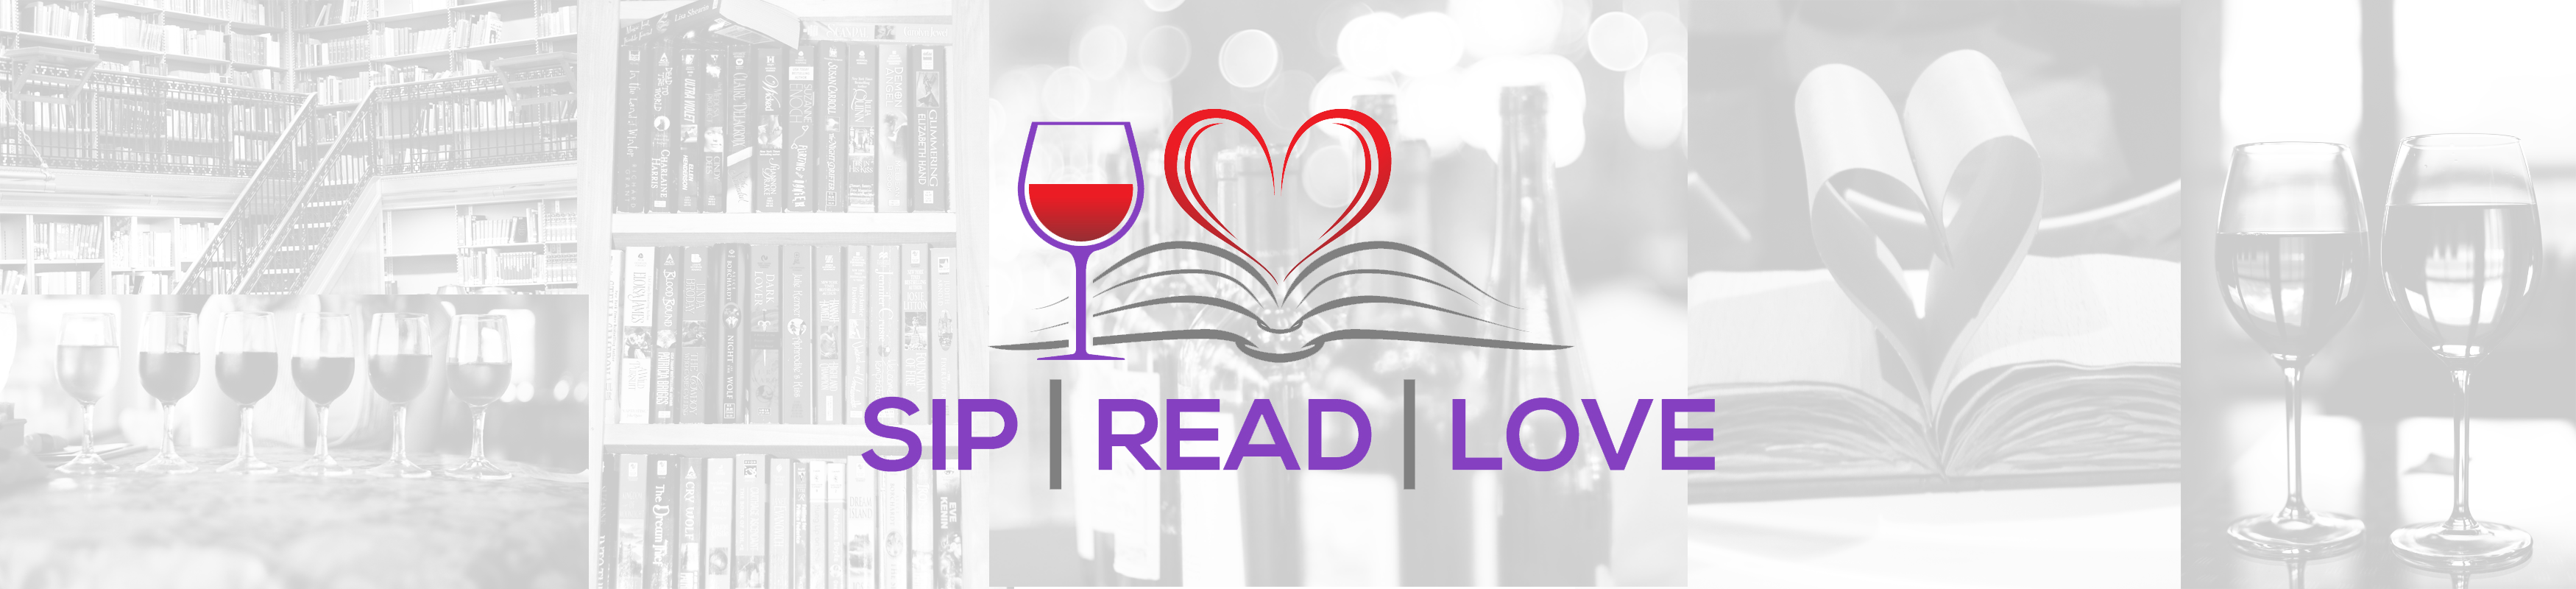 Sip, Read, Love